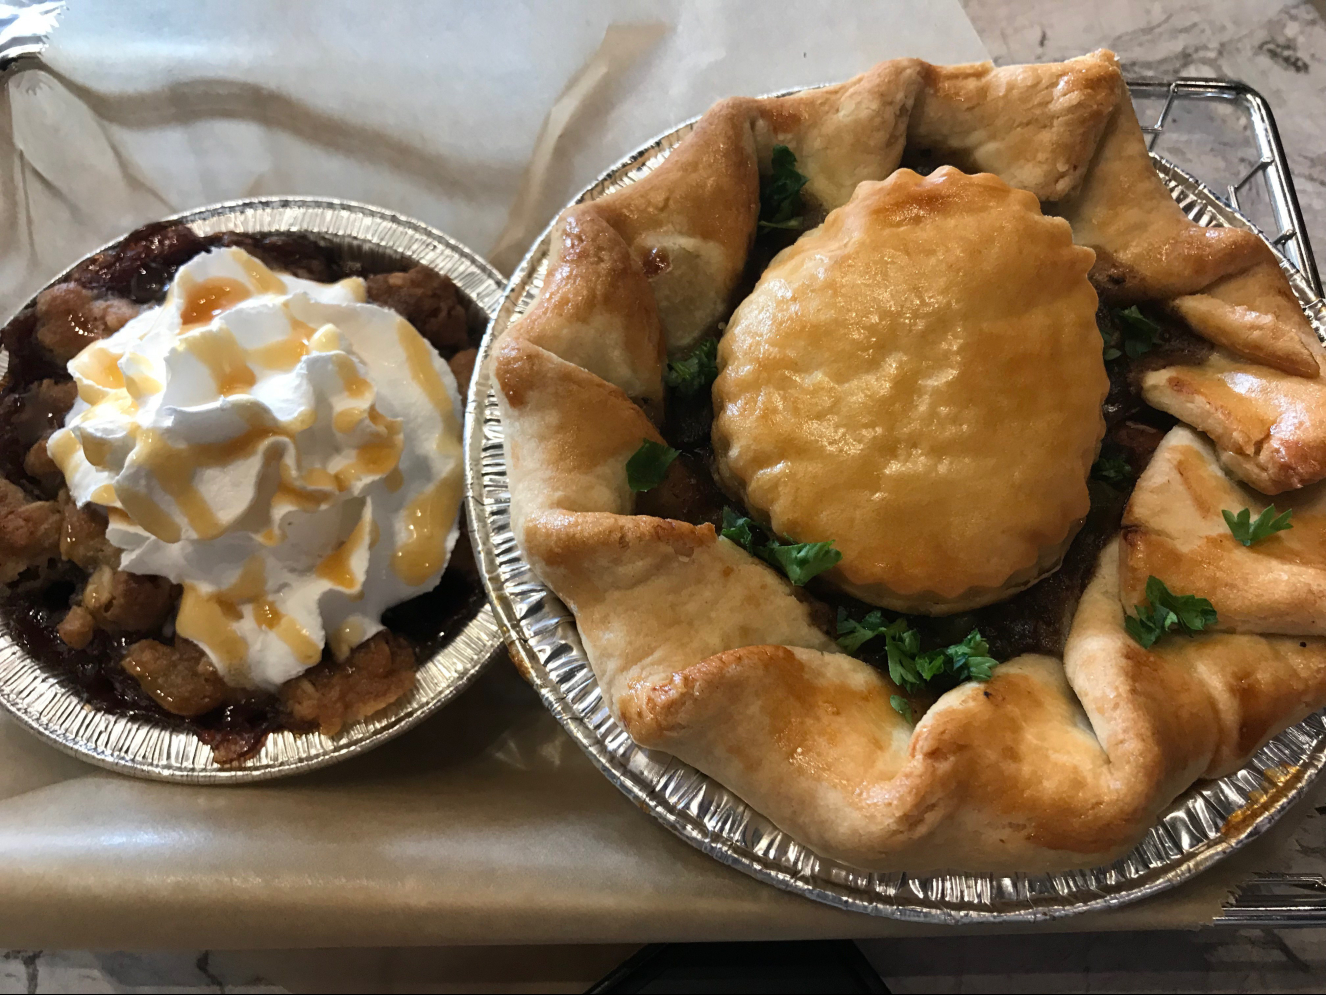 The Beef and Stout savory pie (right) and the Caramel Apple Pear Crisp sweet (left). Delicious!